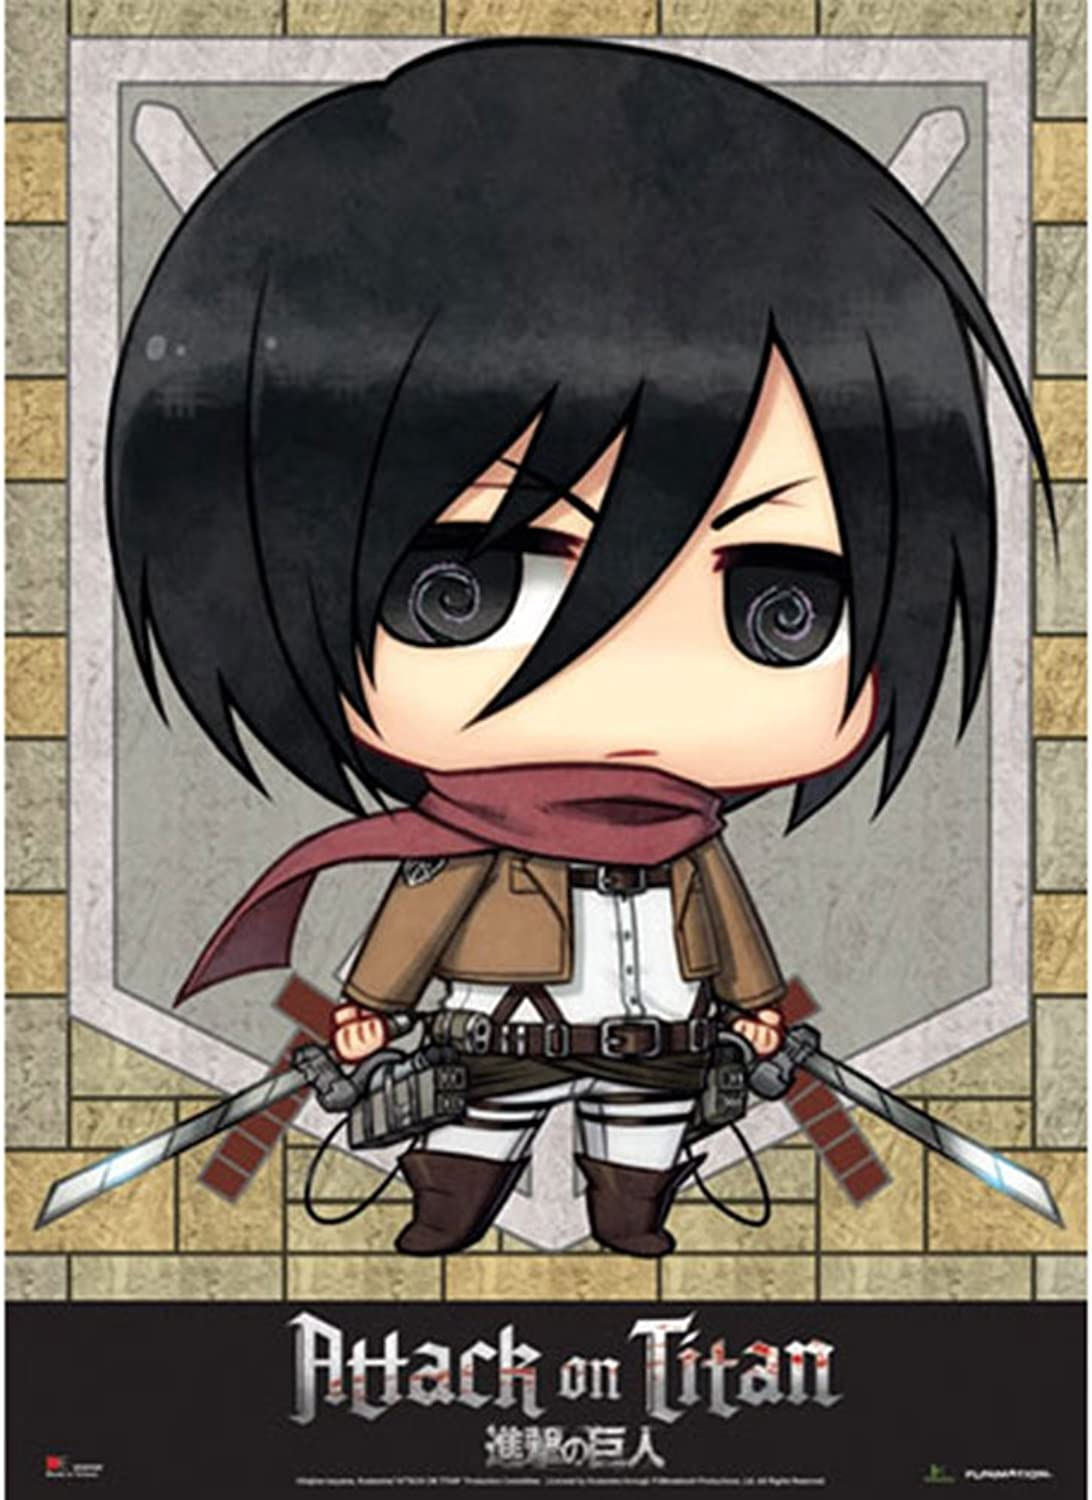 Wall Scroll-Attack on Titan-NEUE SD Misaka Stoff Poster Lizenzprodukt ge60568